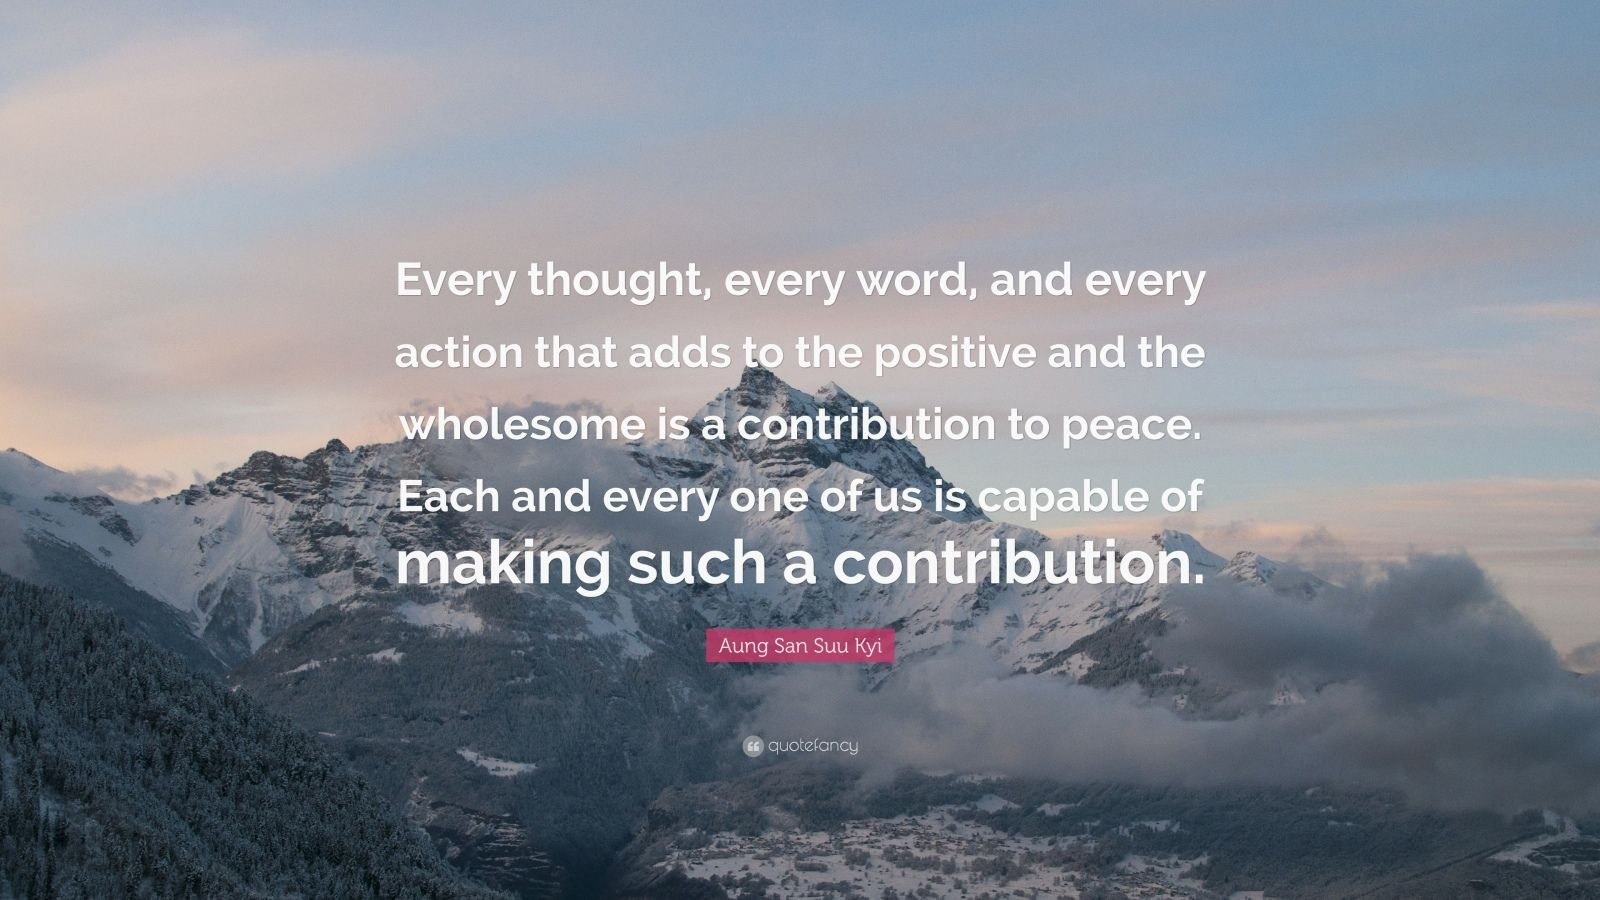 """Aung San Suu Kyi Quote: """"Every thought, every word, and every action that adds to the positive and the wholesome is a contribution to peace. Each and every one of us is capable of making such a contribution."""""""